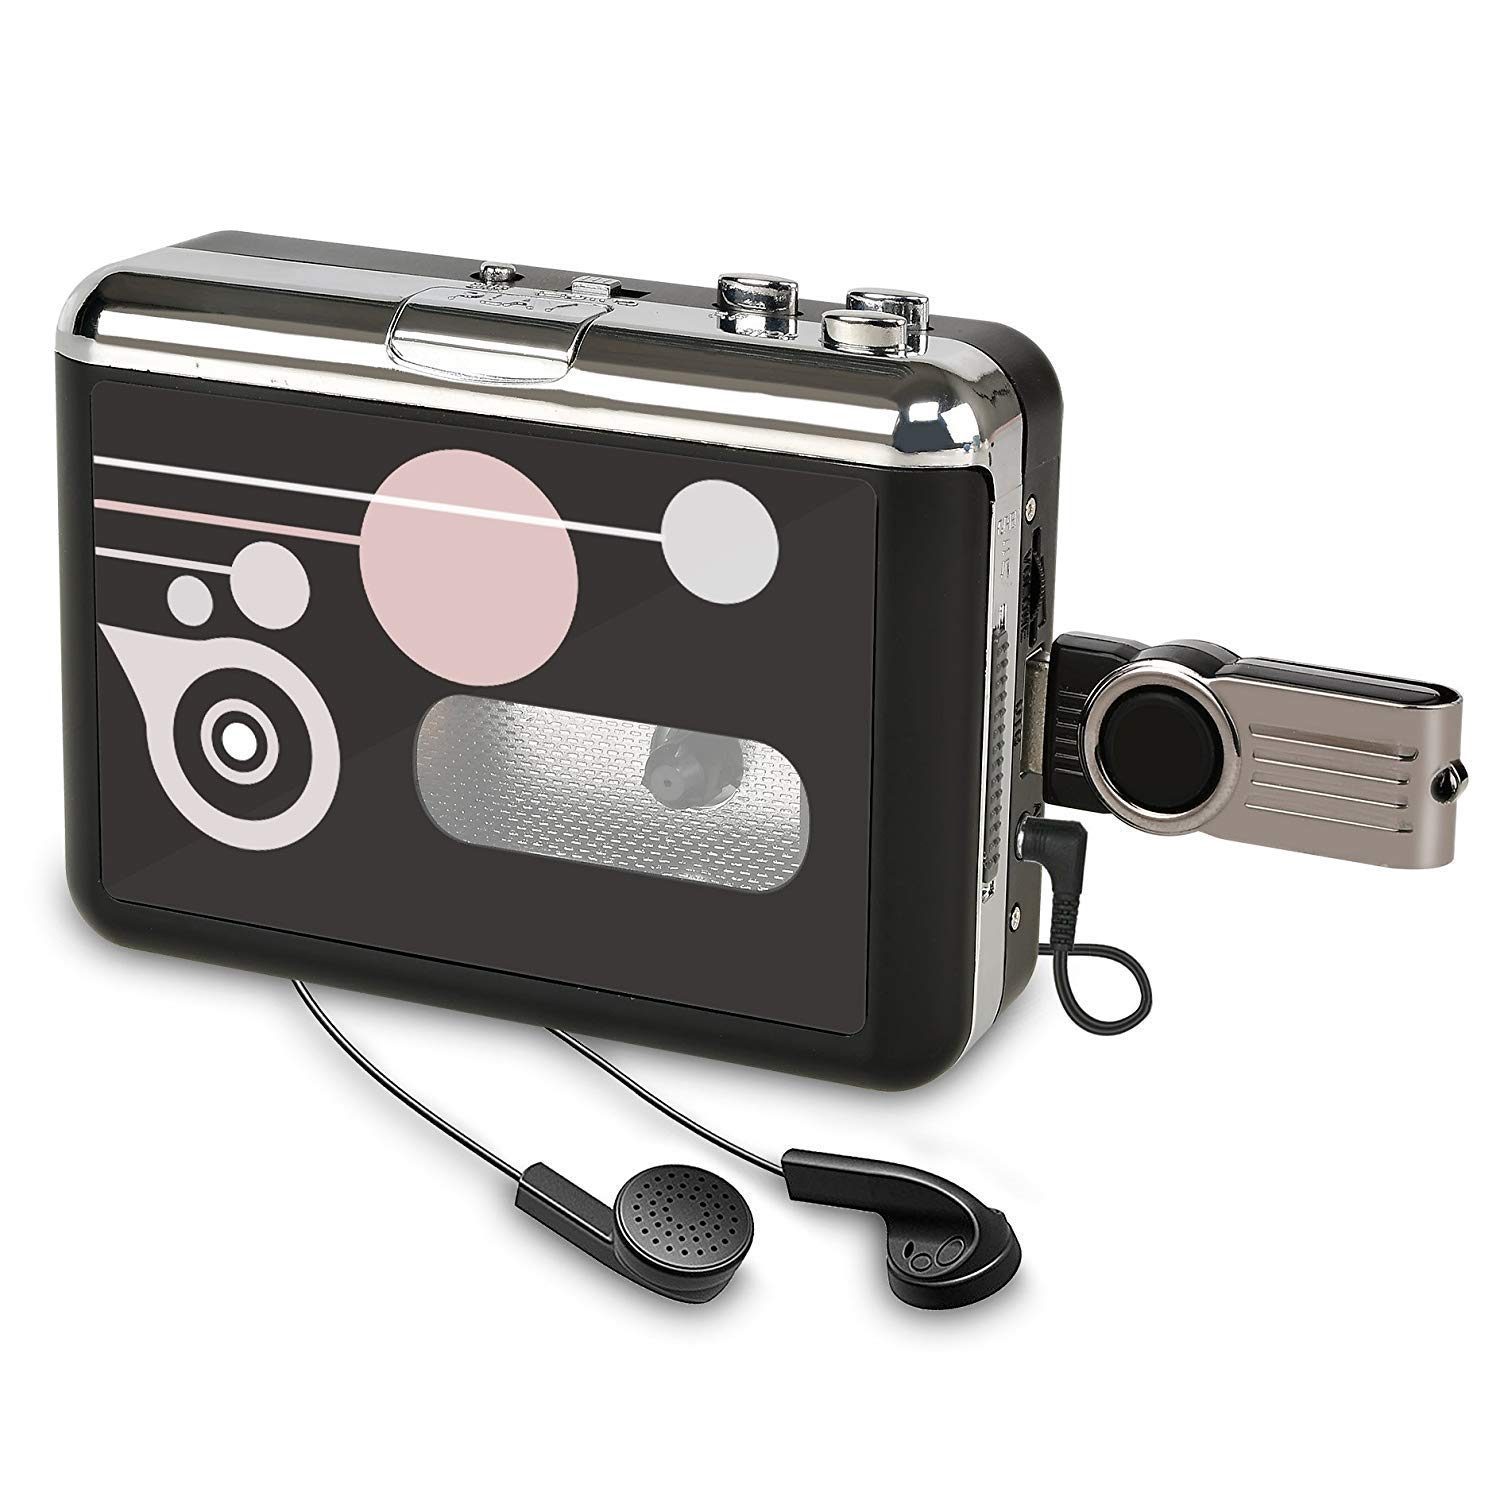 Portable Converter Recorder Convert Tapes to Digital MP3 Save into ...